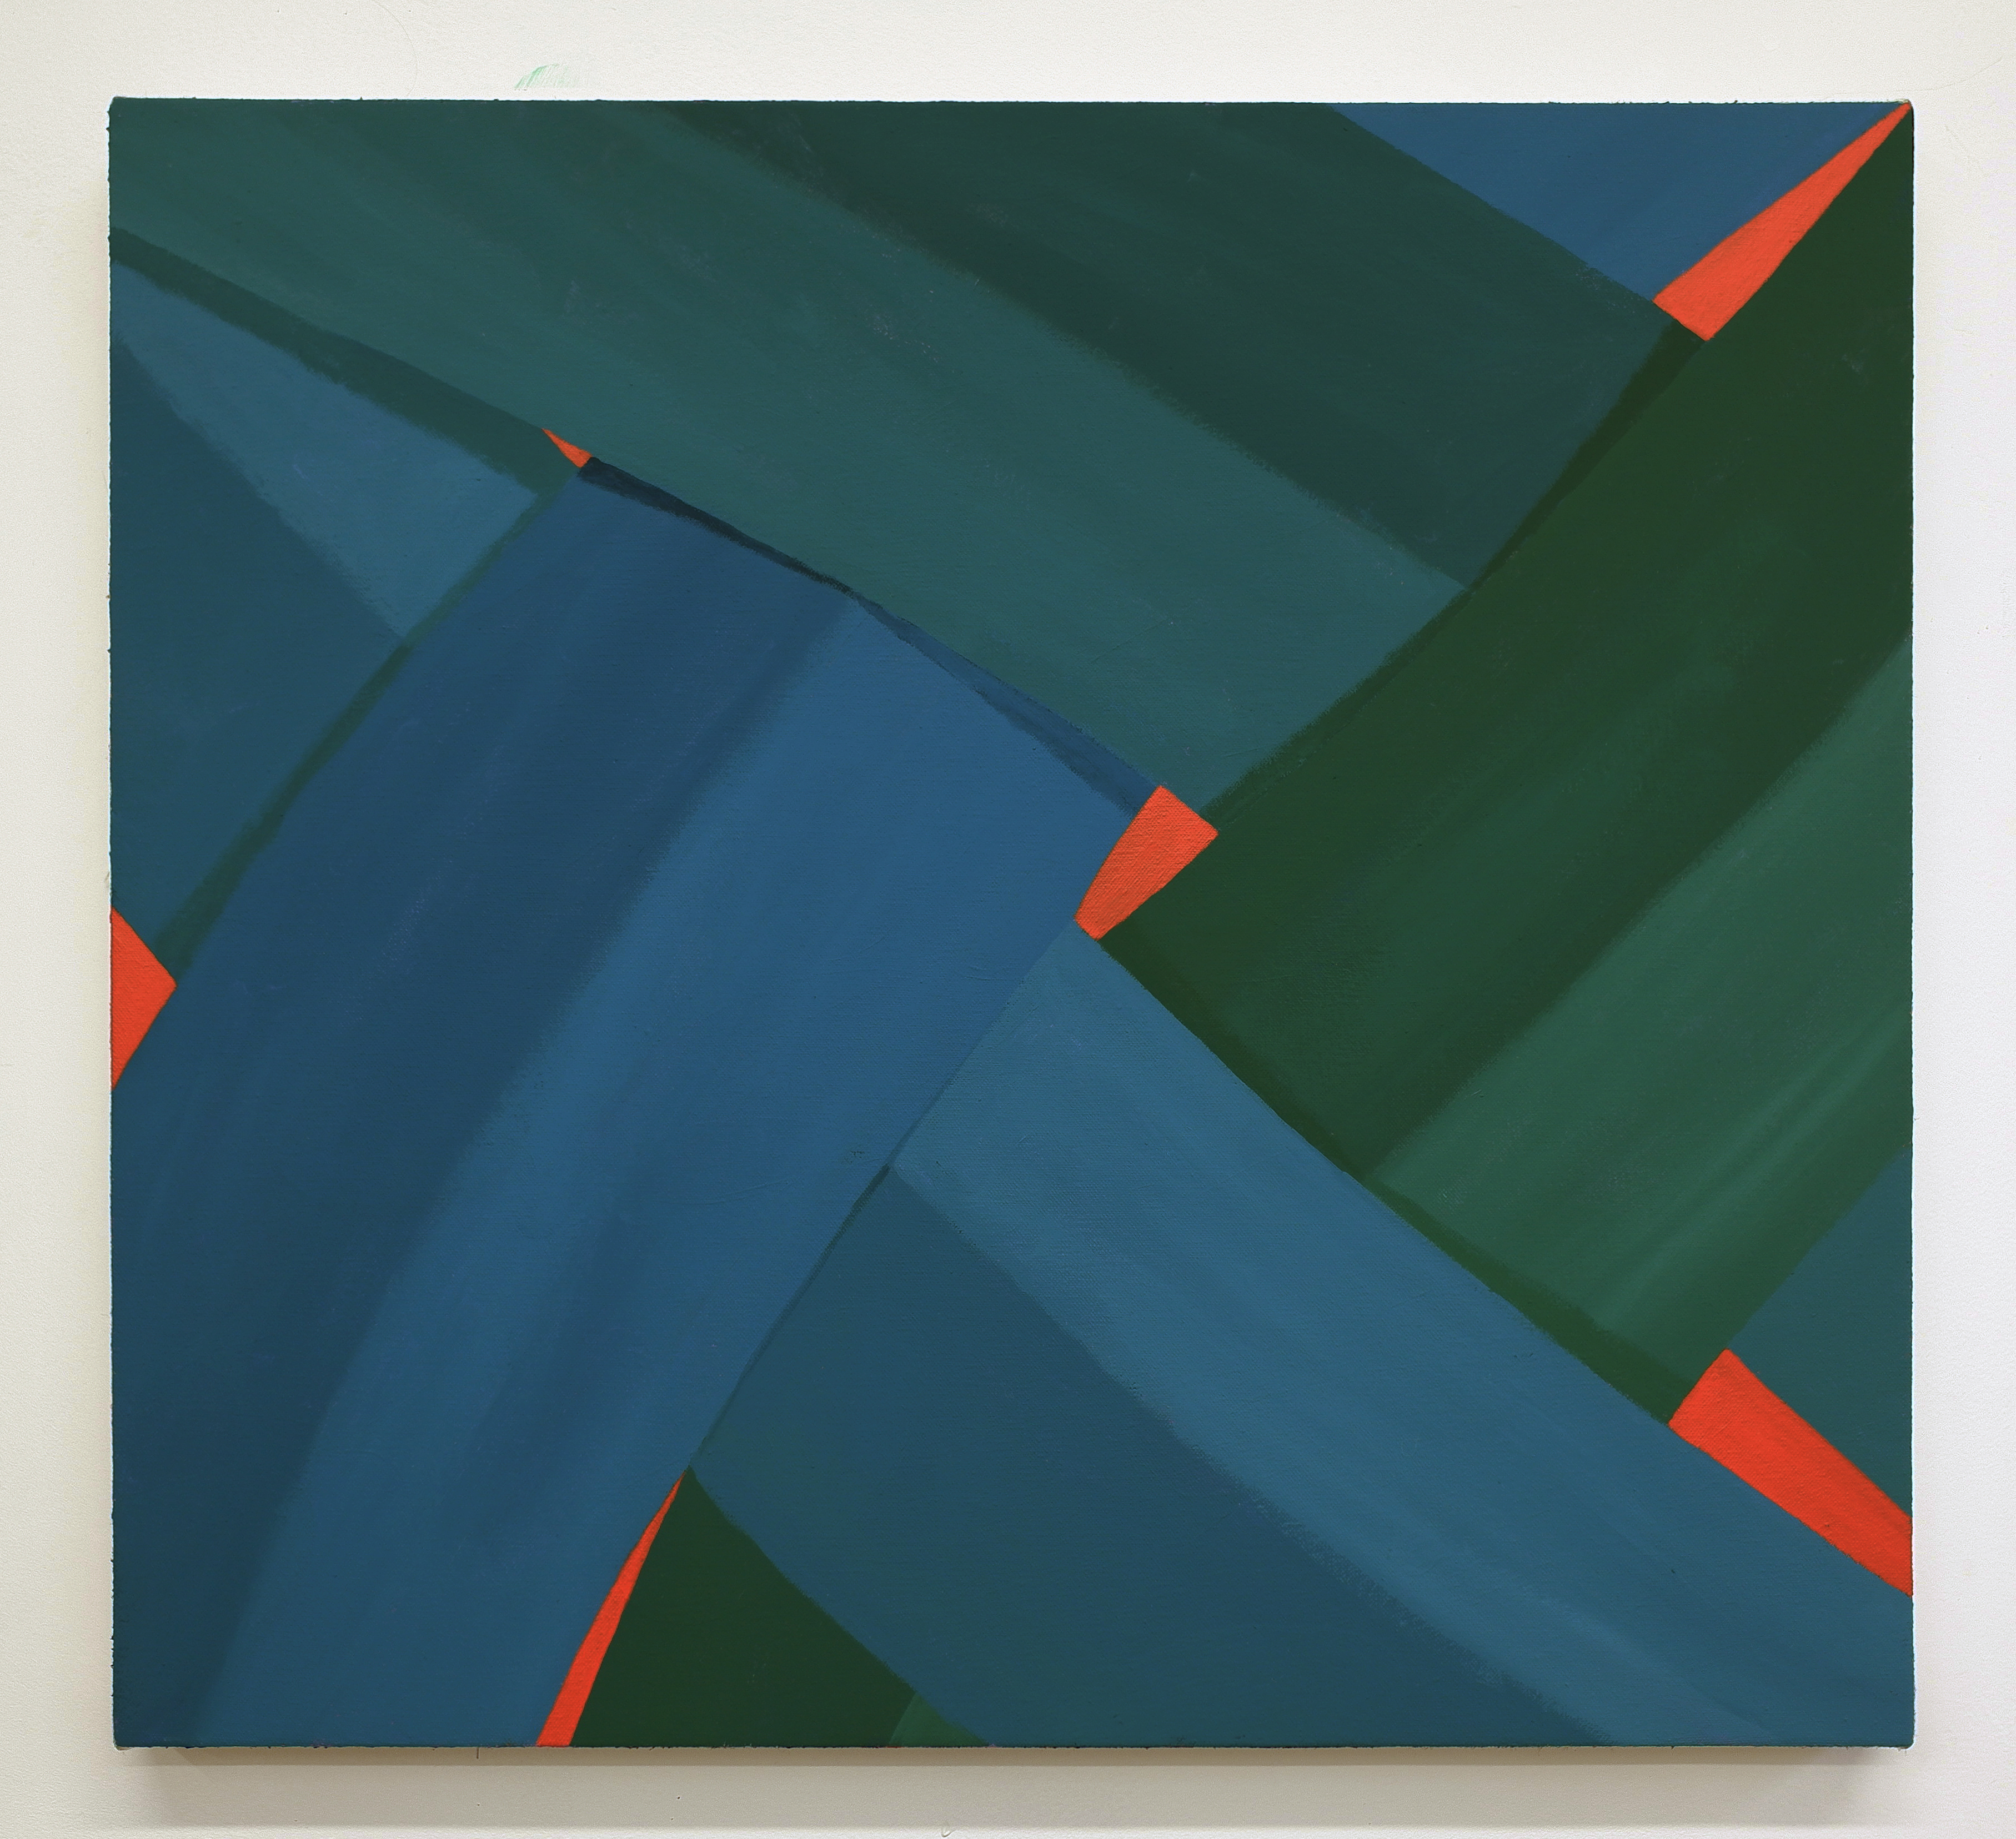 Corydon Cowansage, Blue, Green, Red, 2019, acrylic and vinyl paint on canvas, 20 x 22 inches